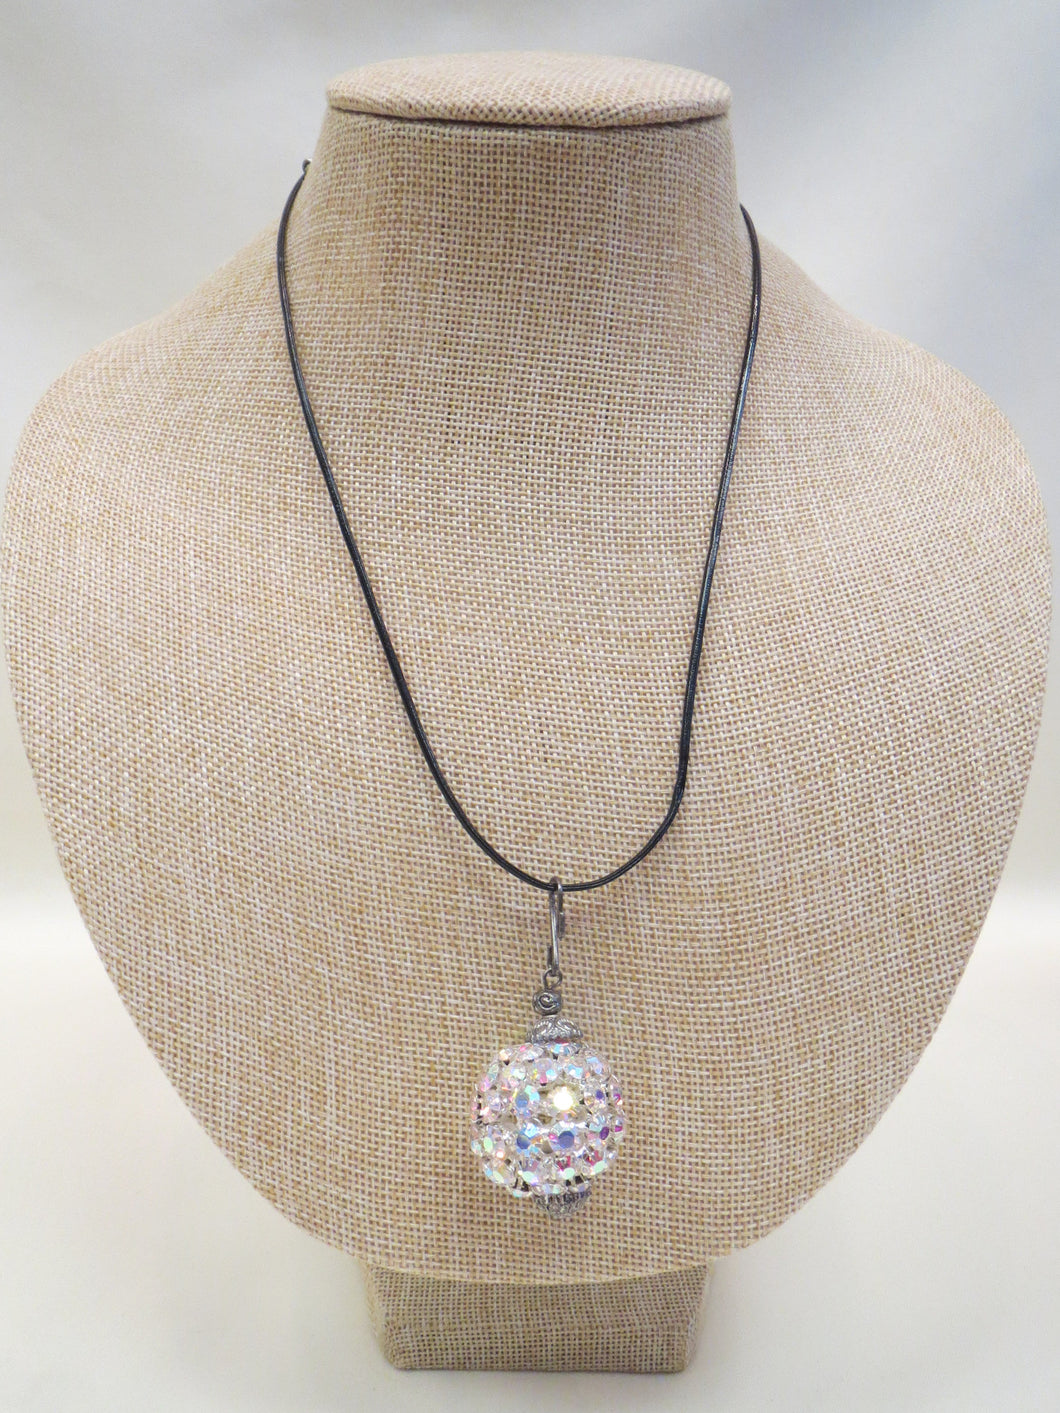 ADO Crystal Ball Necklace | All Dec'd Out